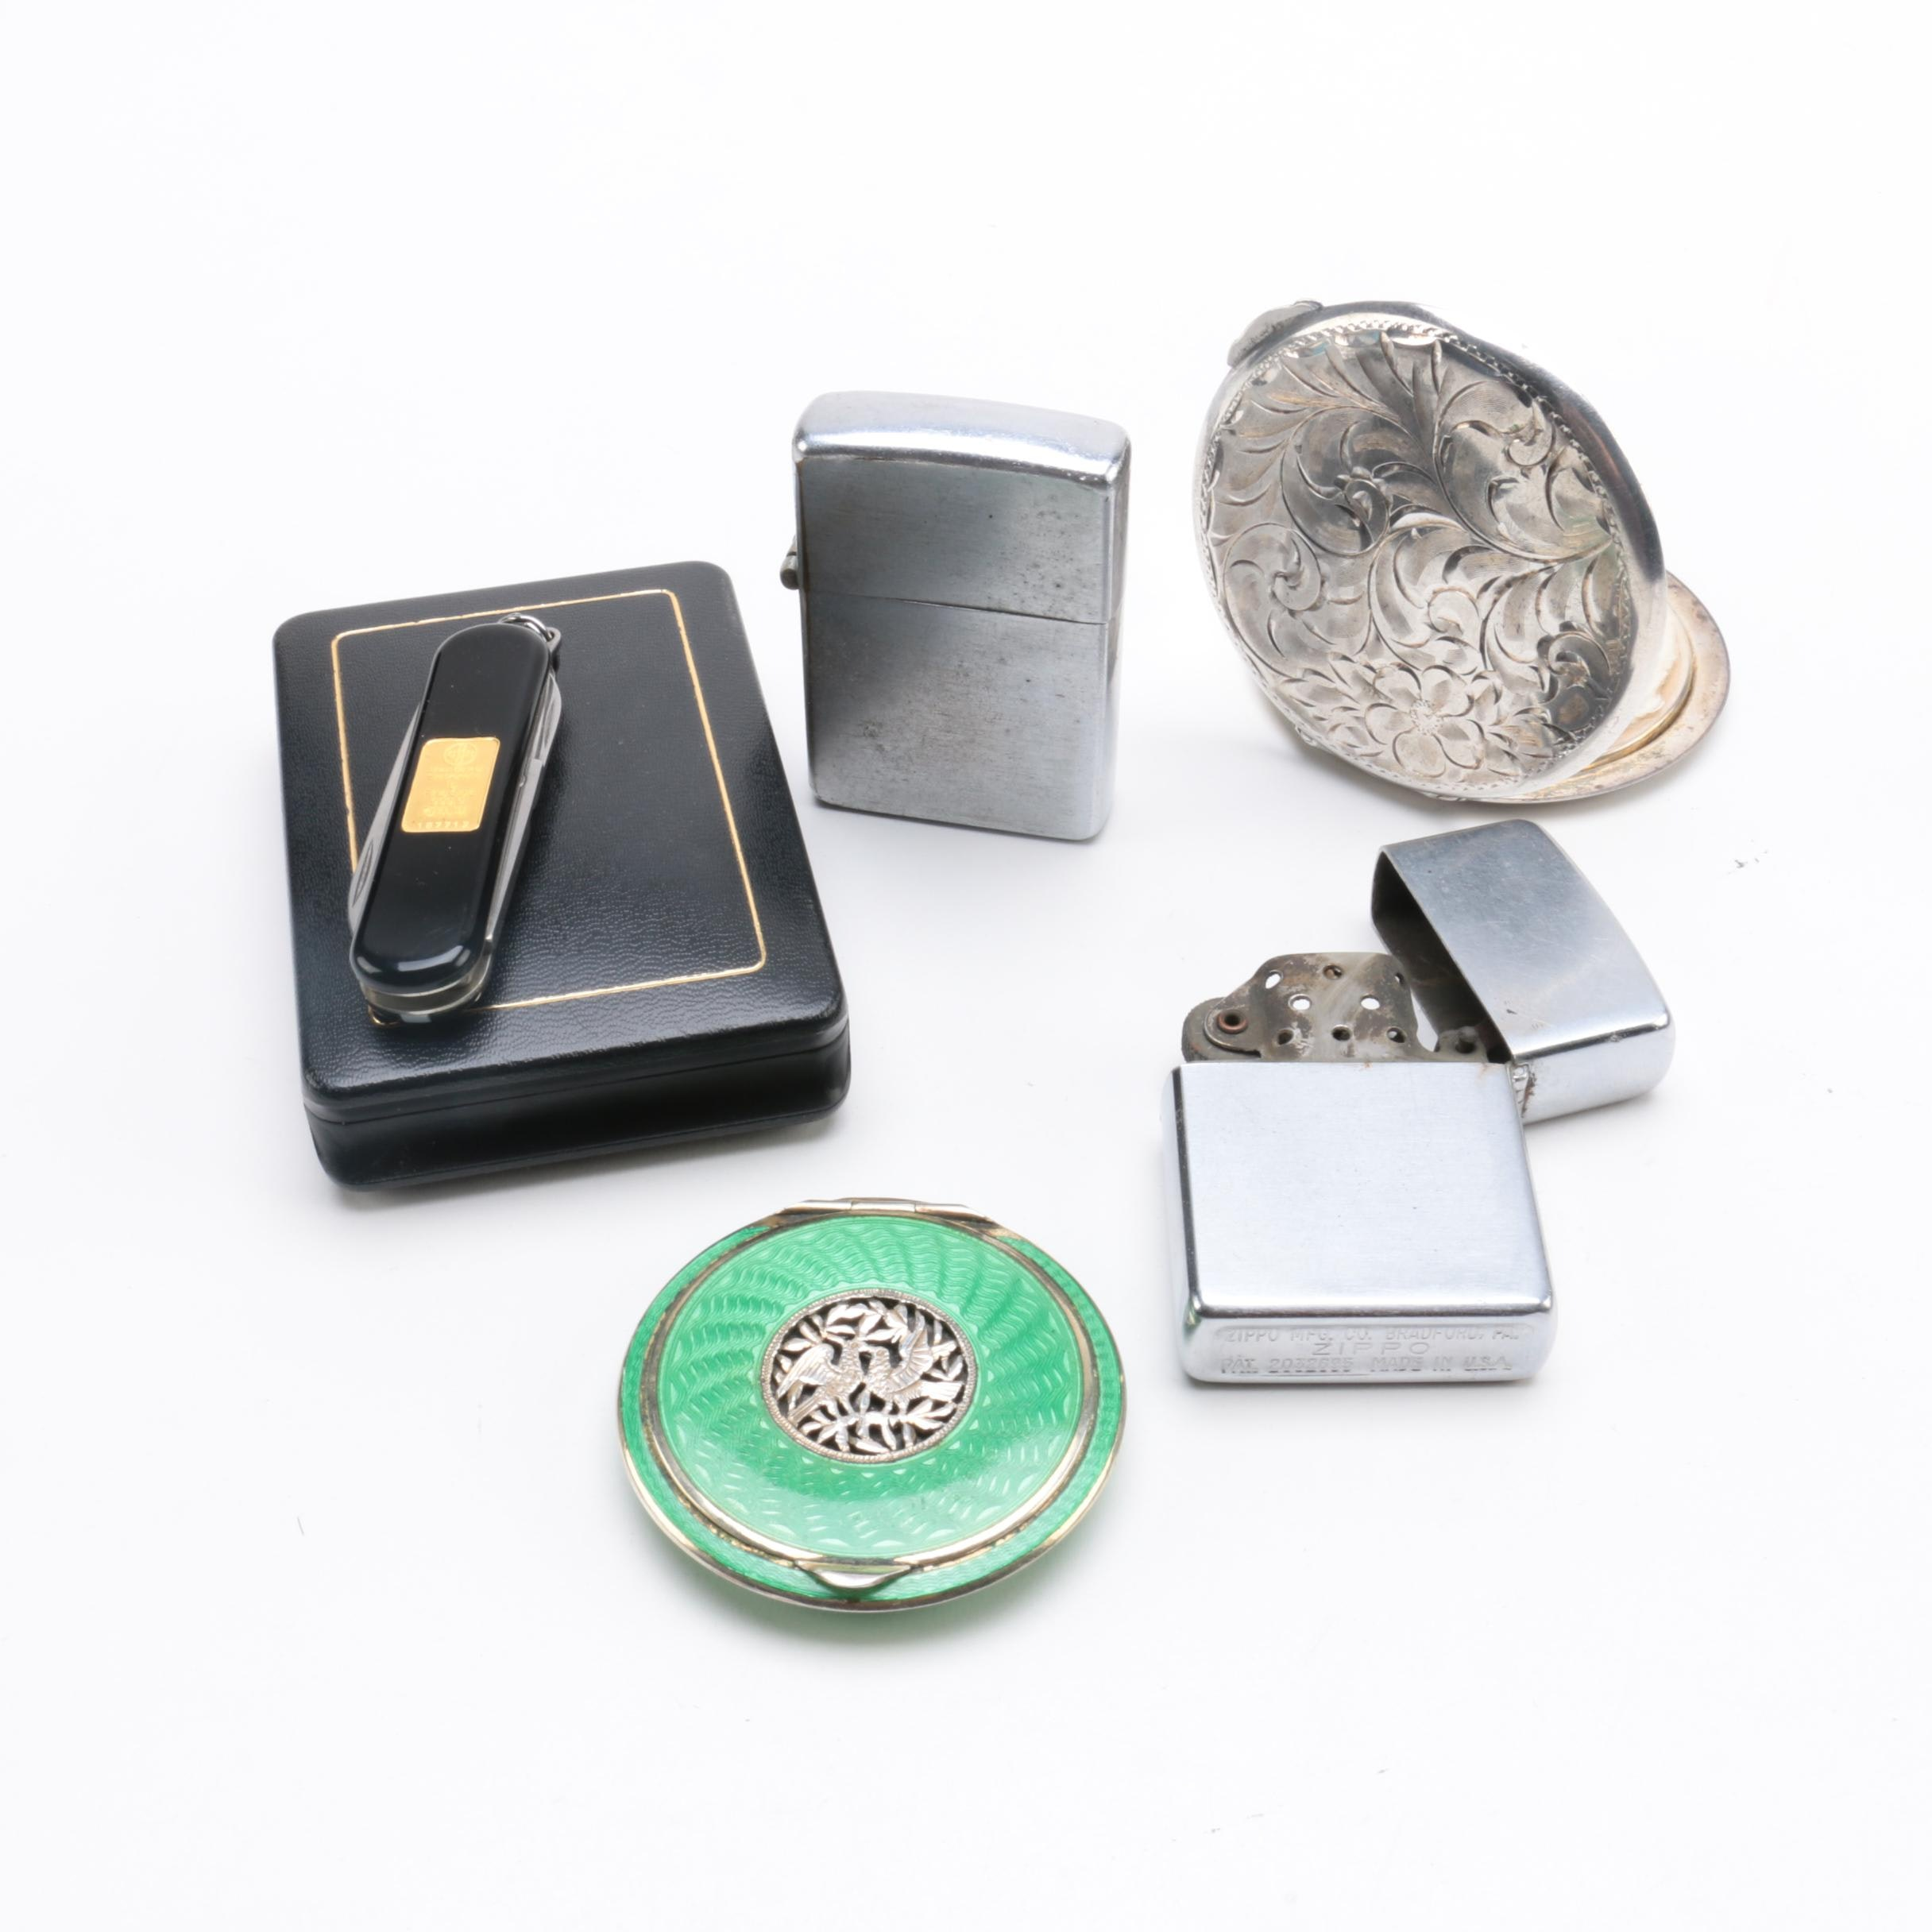 Victorinox Gold Ingot Knife with Birks Sterling Compact and Zippo Lighters